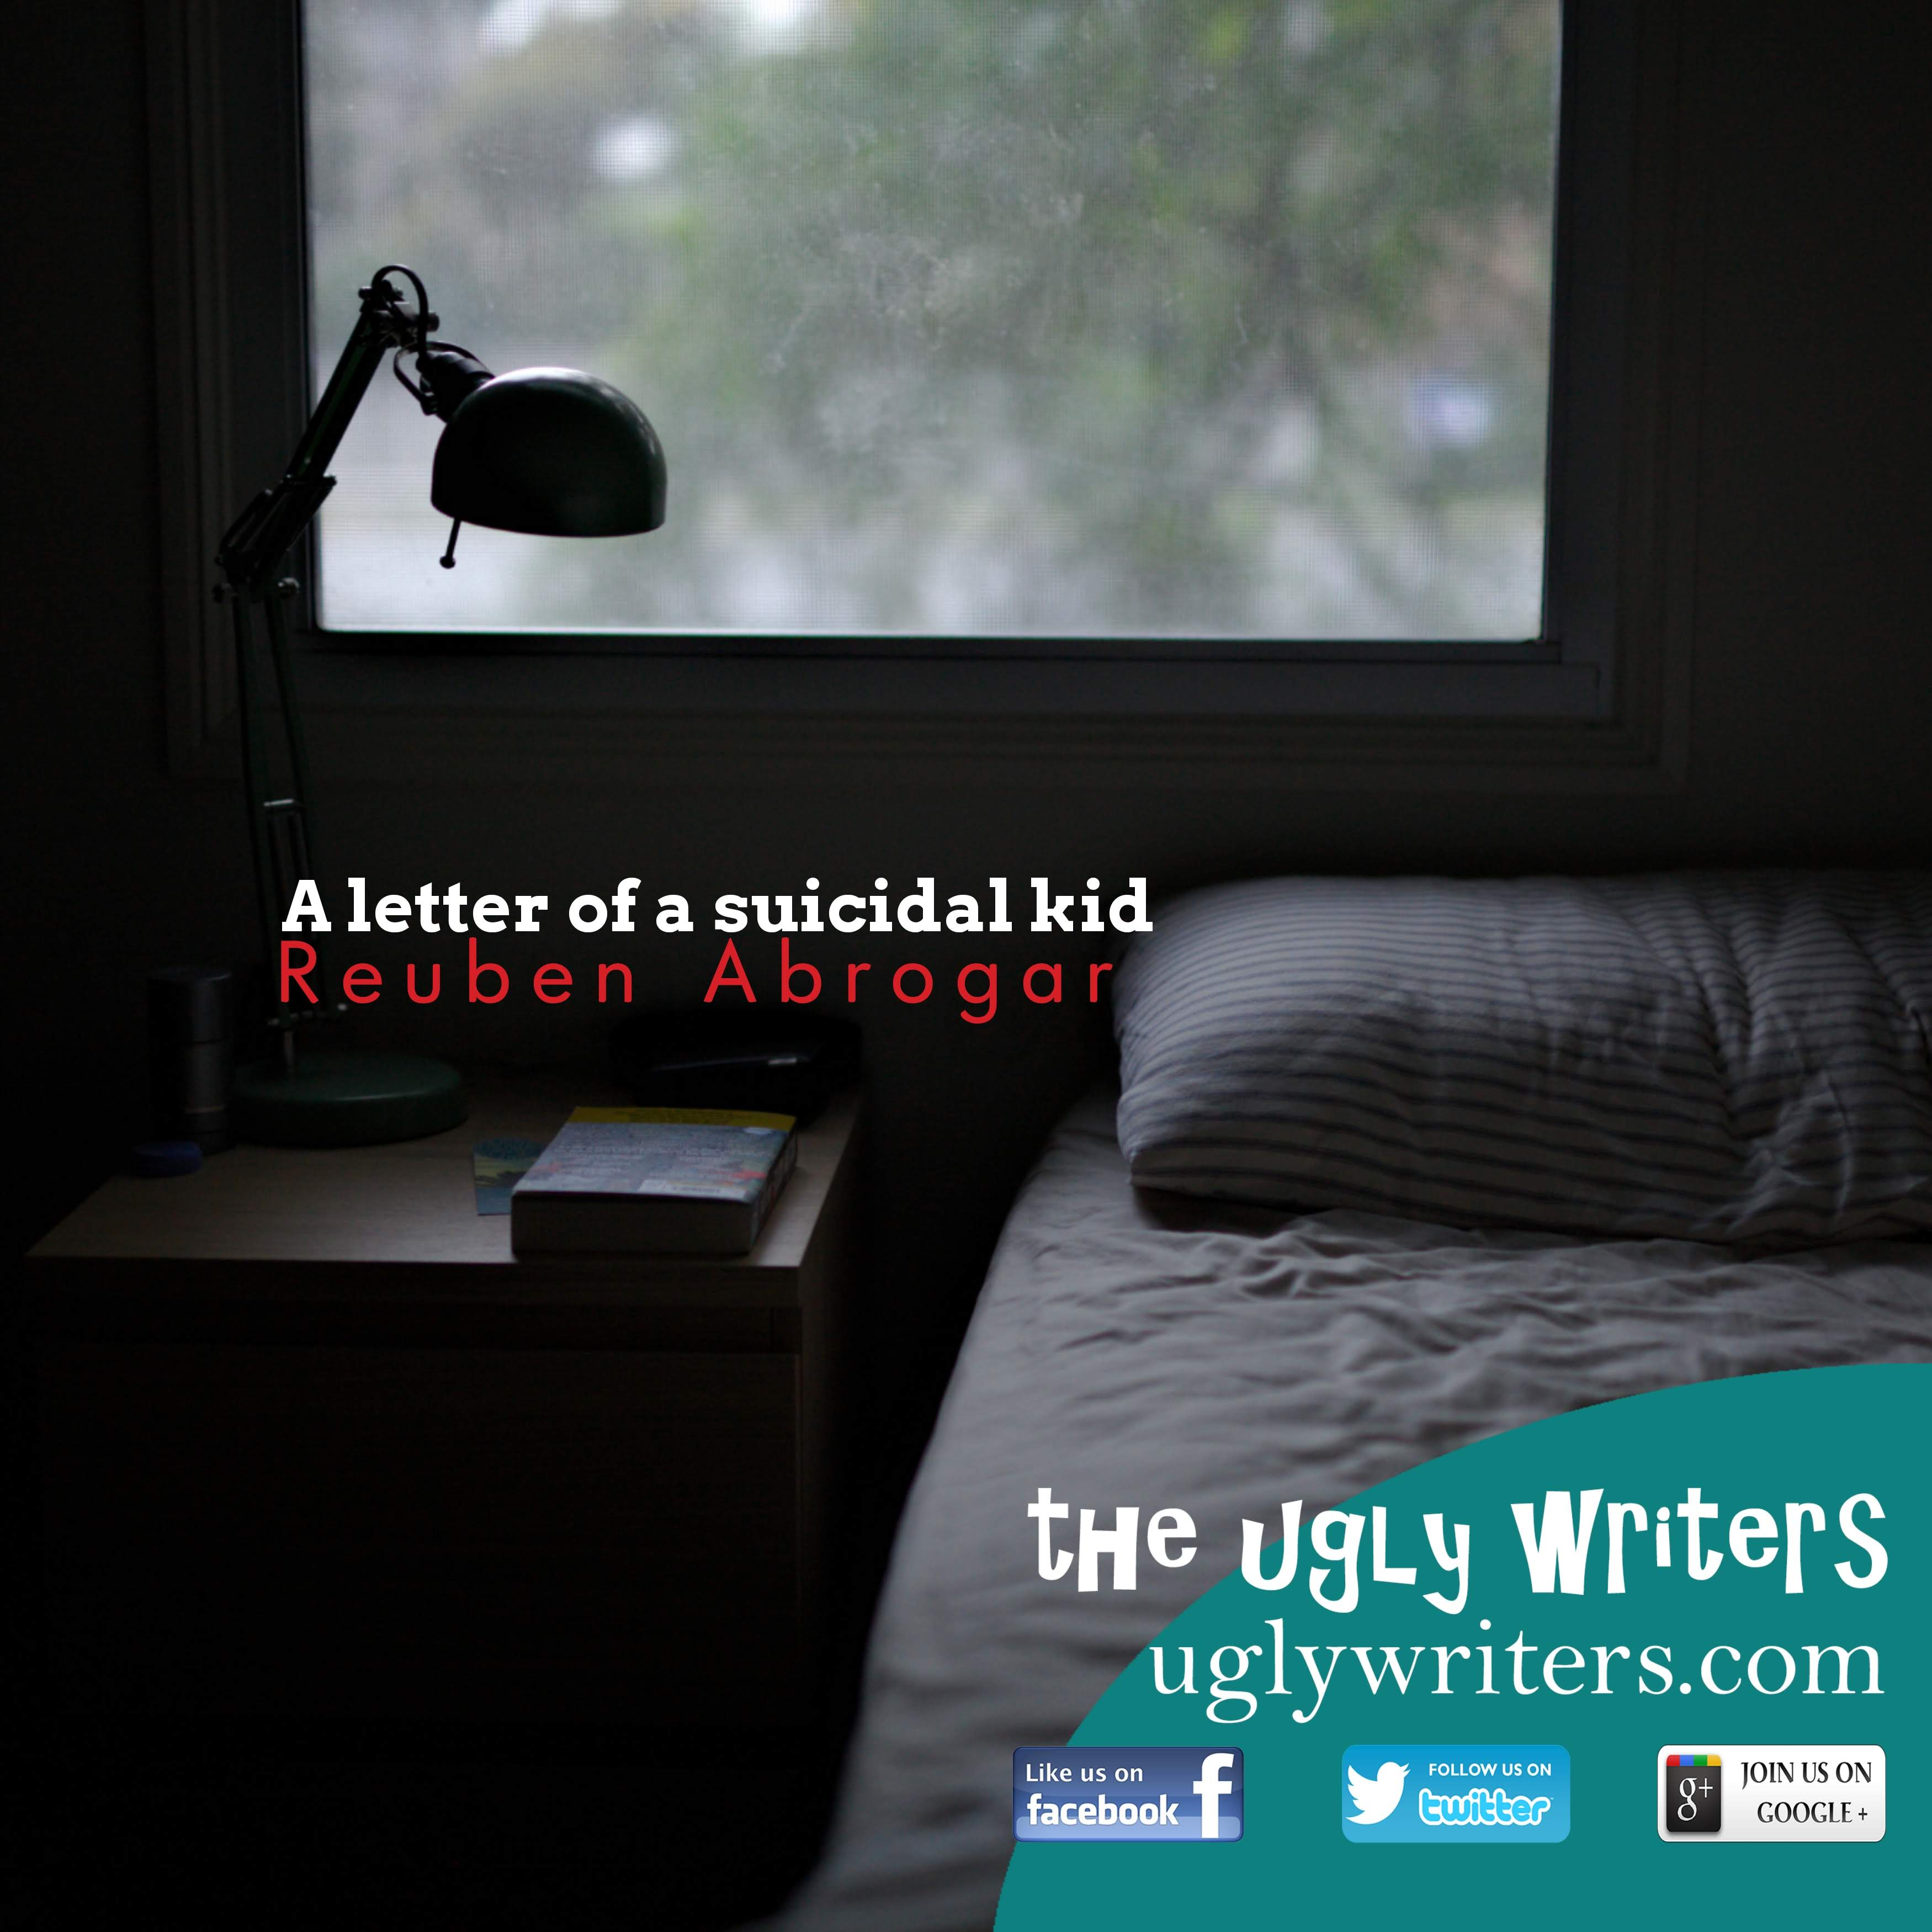 a letter of a suicidal kid